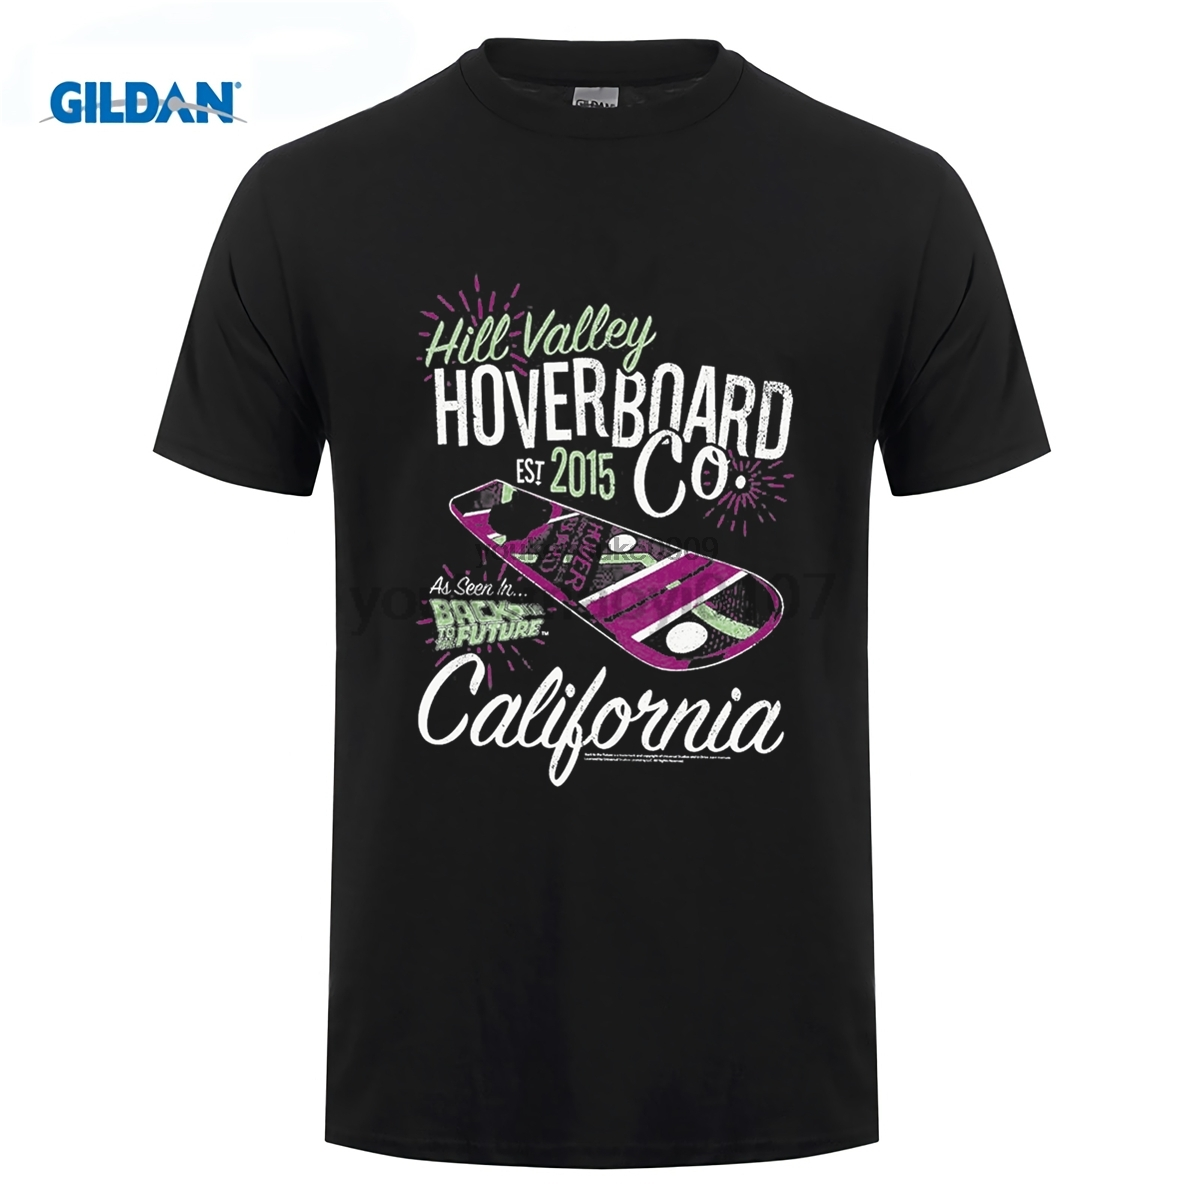 GILDAN funny t shirt 2016 Brand Tshirt Homme Tees Back to the Future Hill Valley Hoverboard Company Navy Adult T-shirt